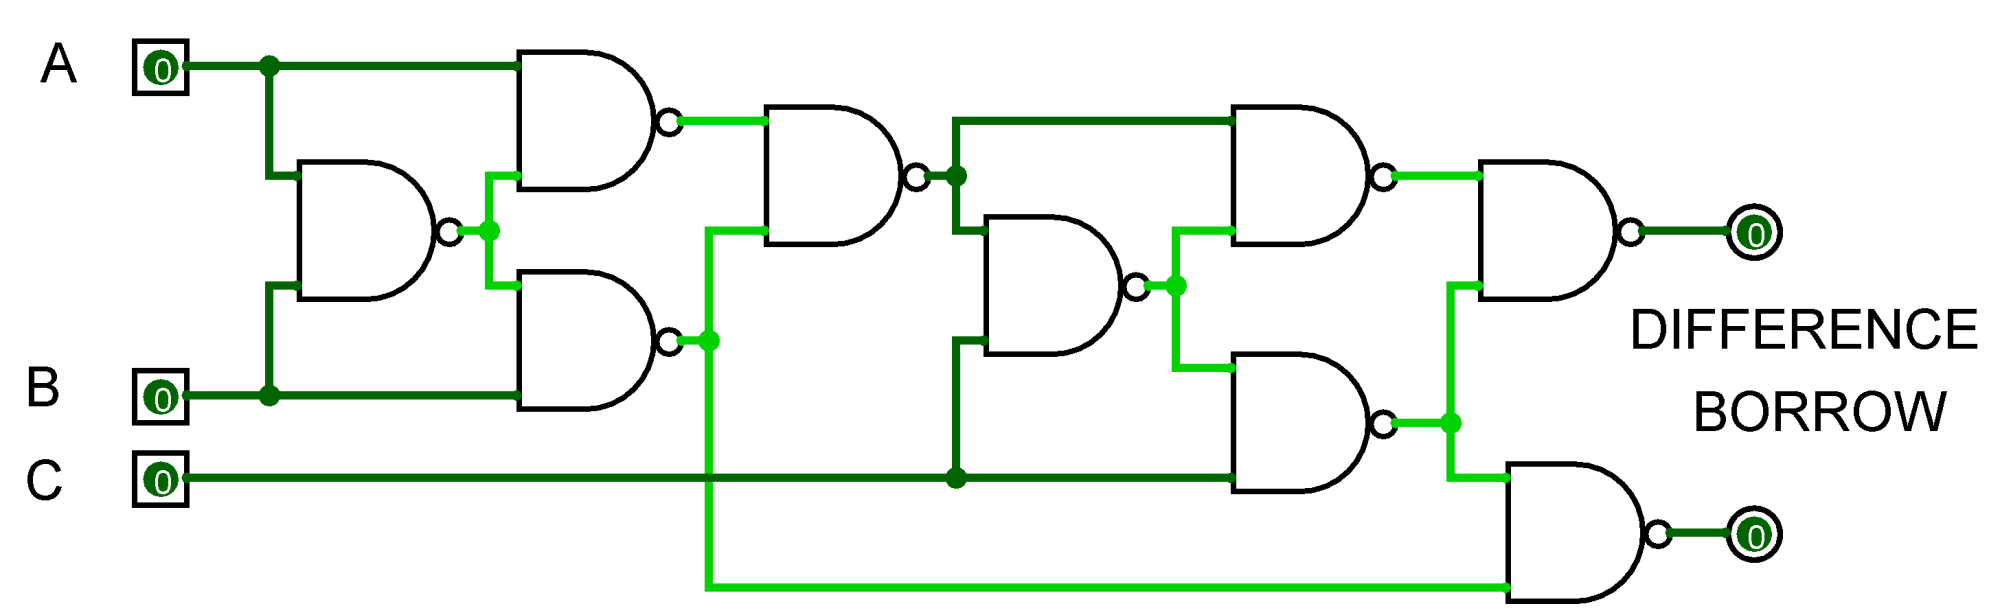 hight resolution of logic diagram using only nand gates wiring diagram list logic diagram using nand gates only logic